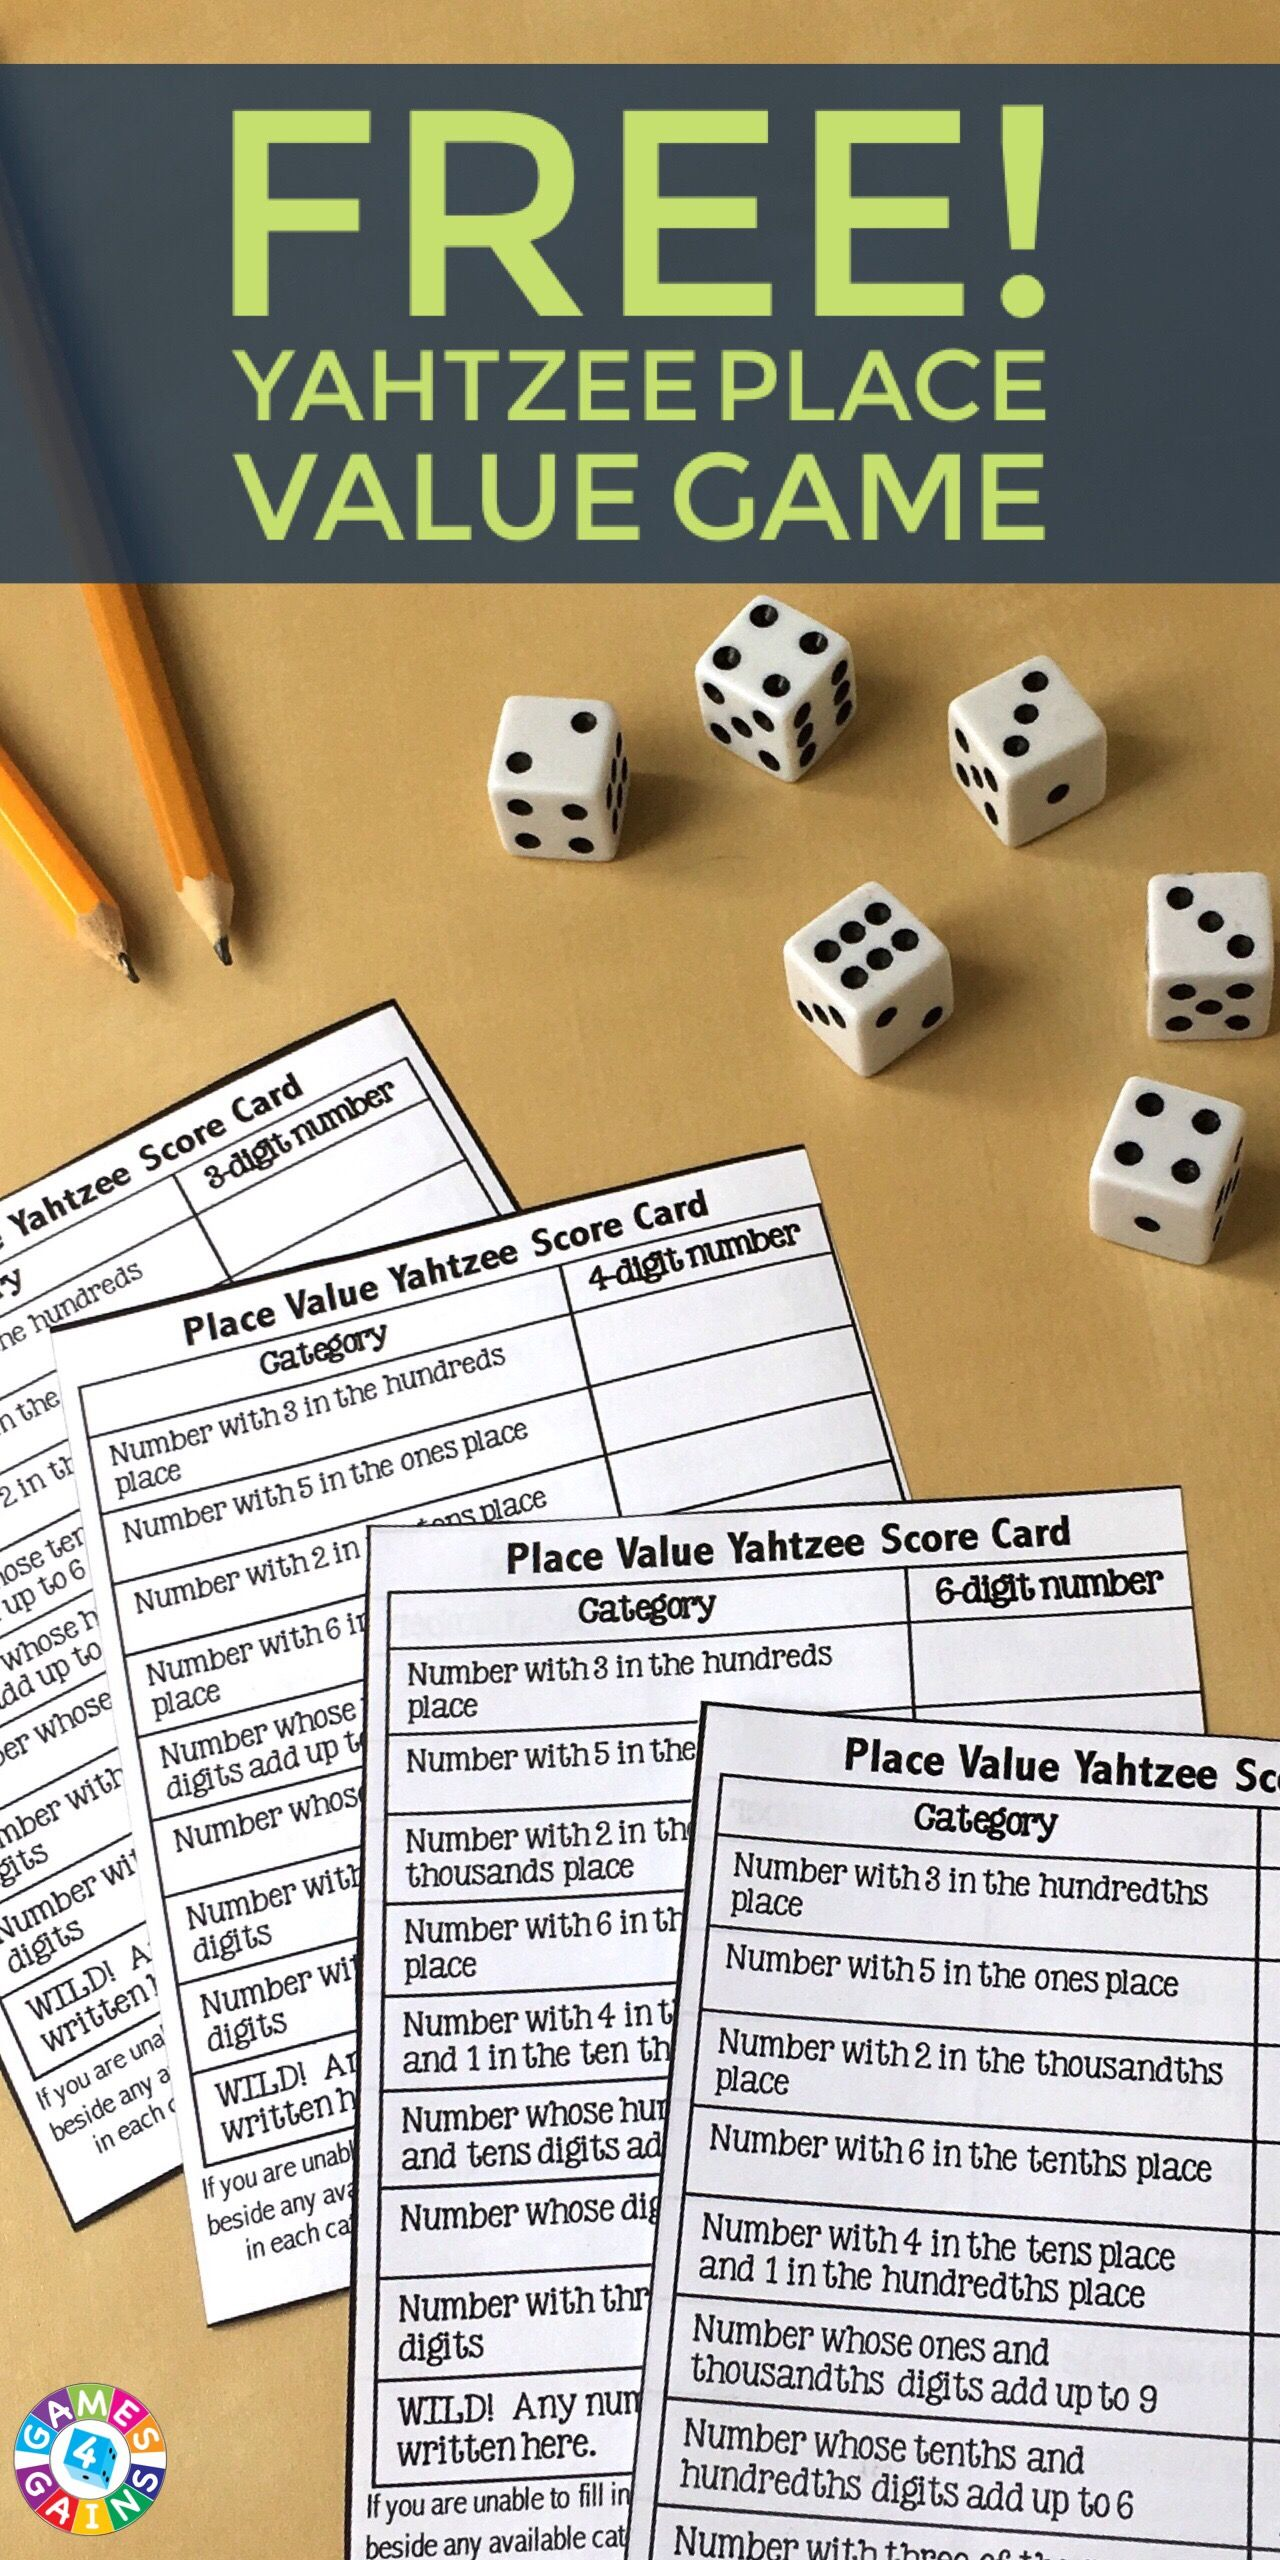 Score Some Points With Place Value Yahtzee